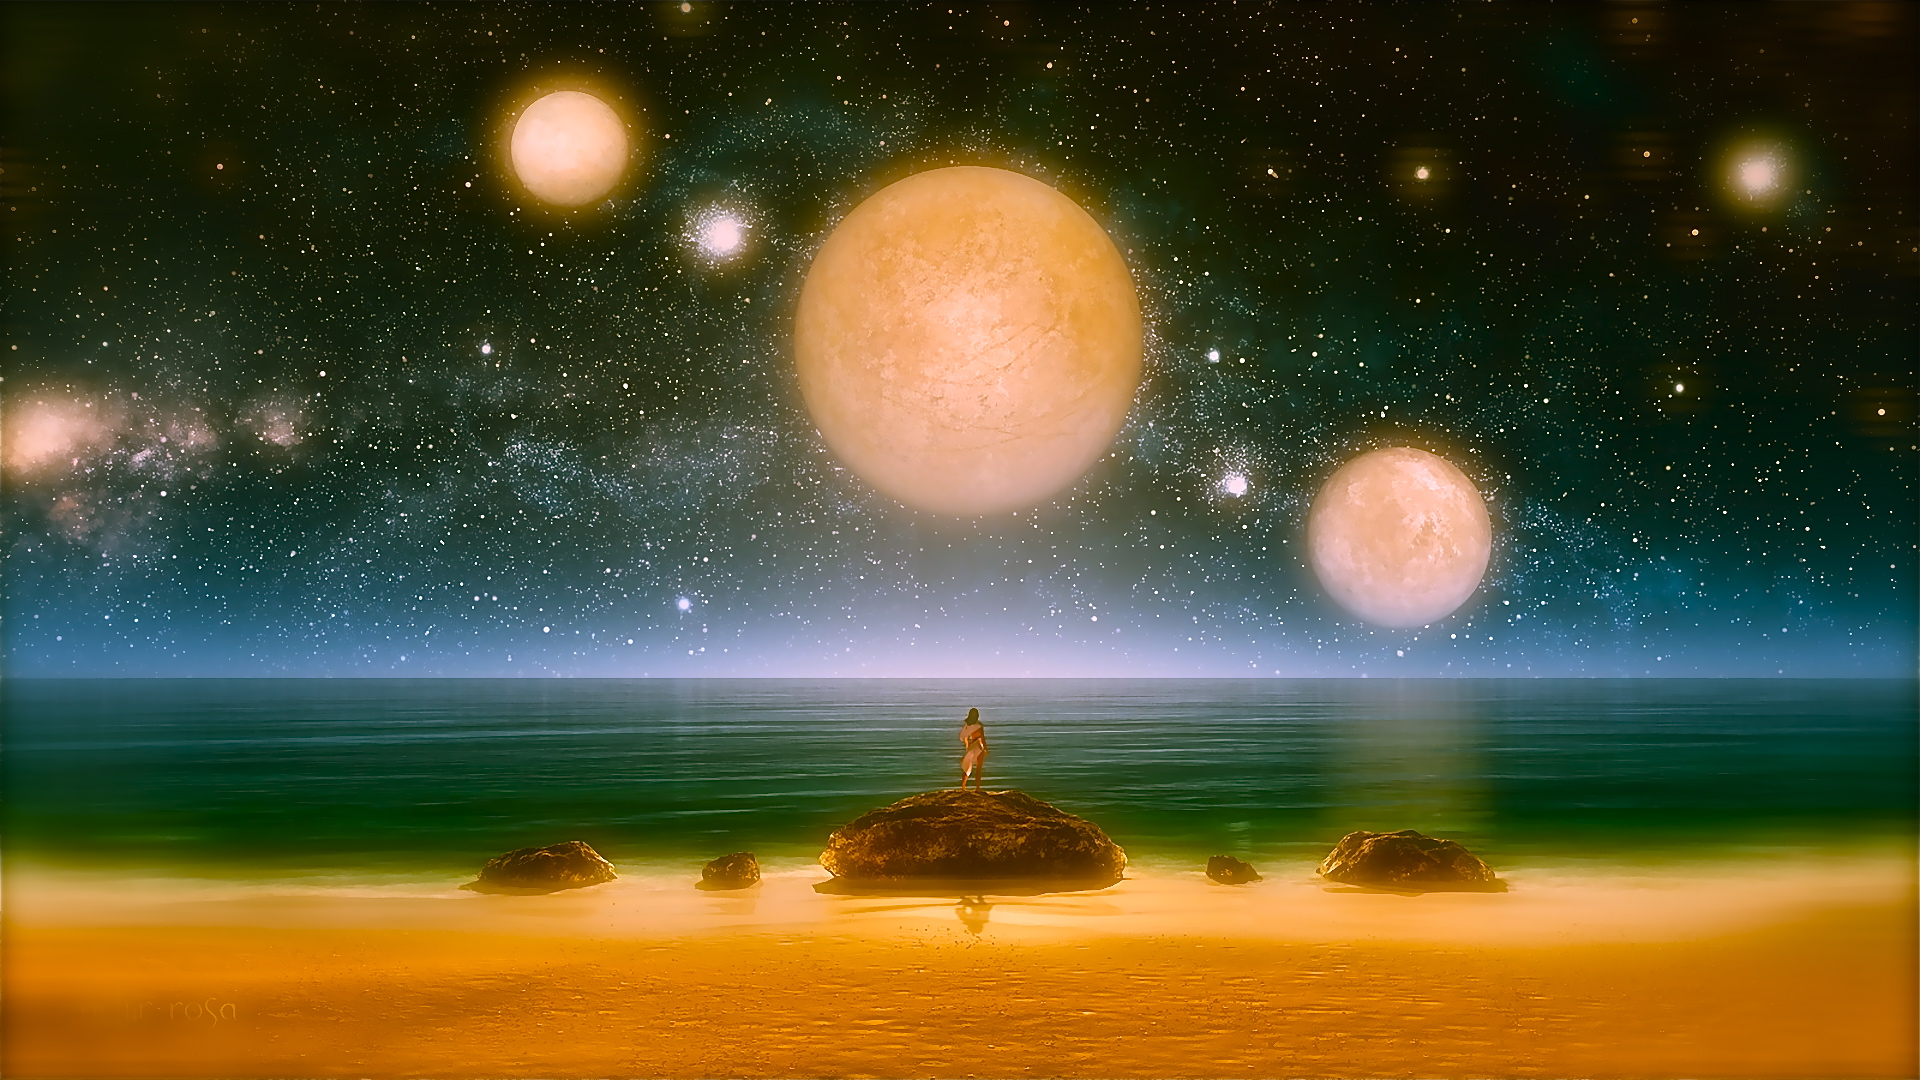 art-fantasy-girl-sea-rocks-night-night-sky-stars-planets-three1